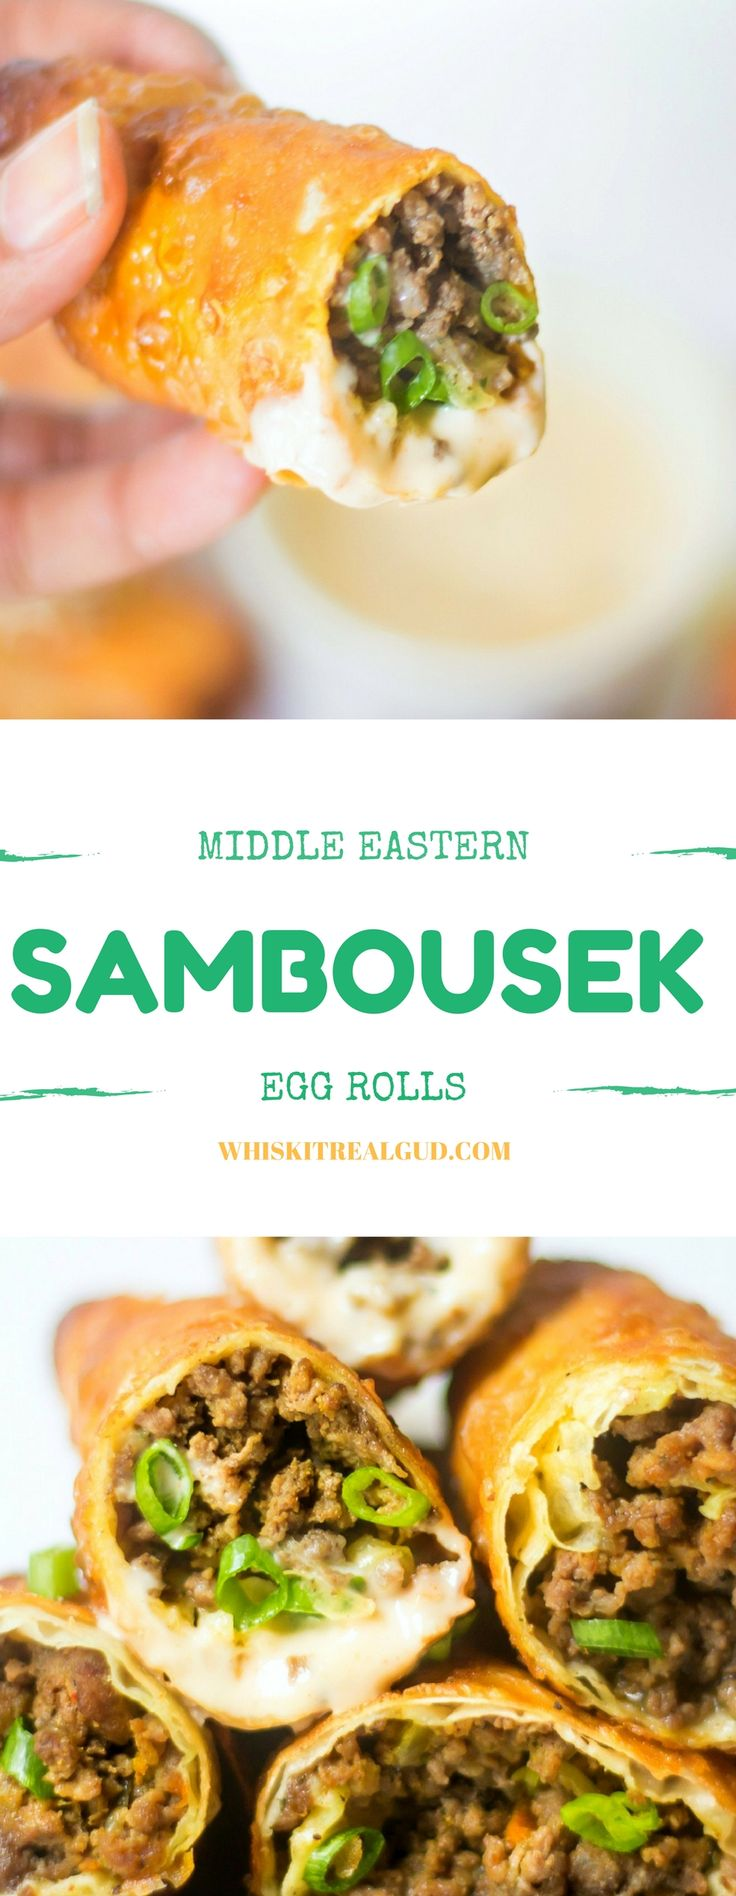 Middle Eastern Sambousek with Garlic Cilantro Aioli Dipping Sauce